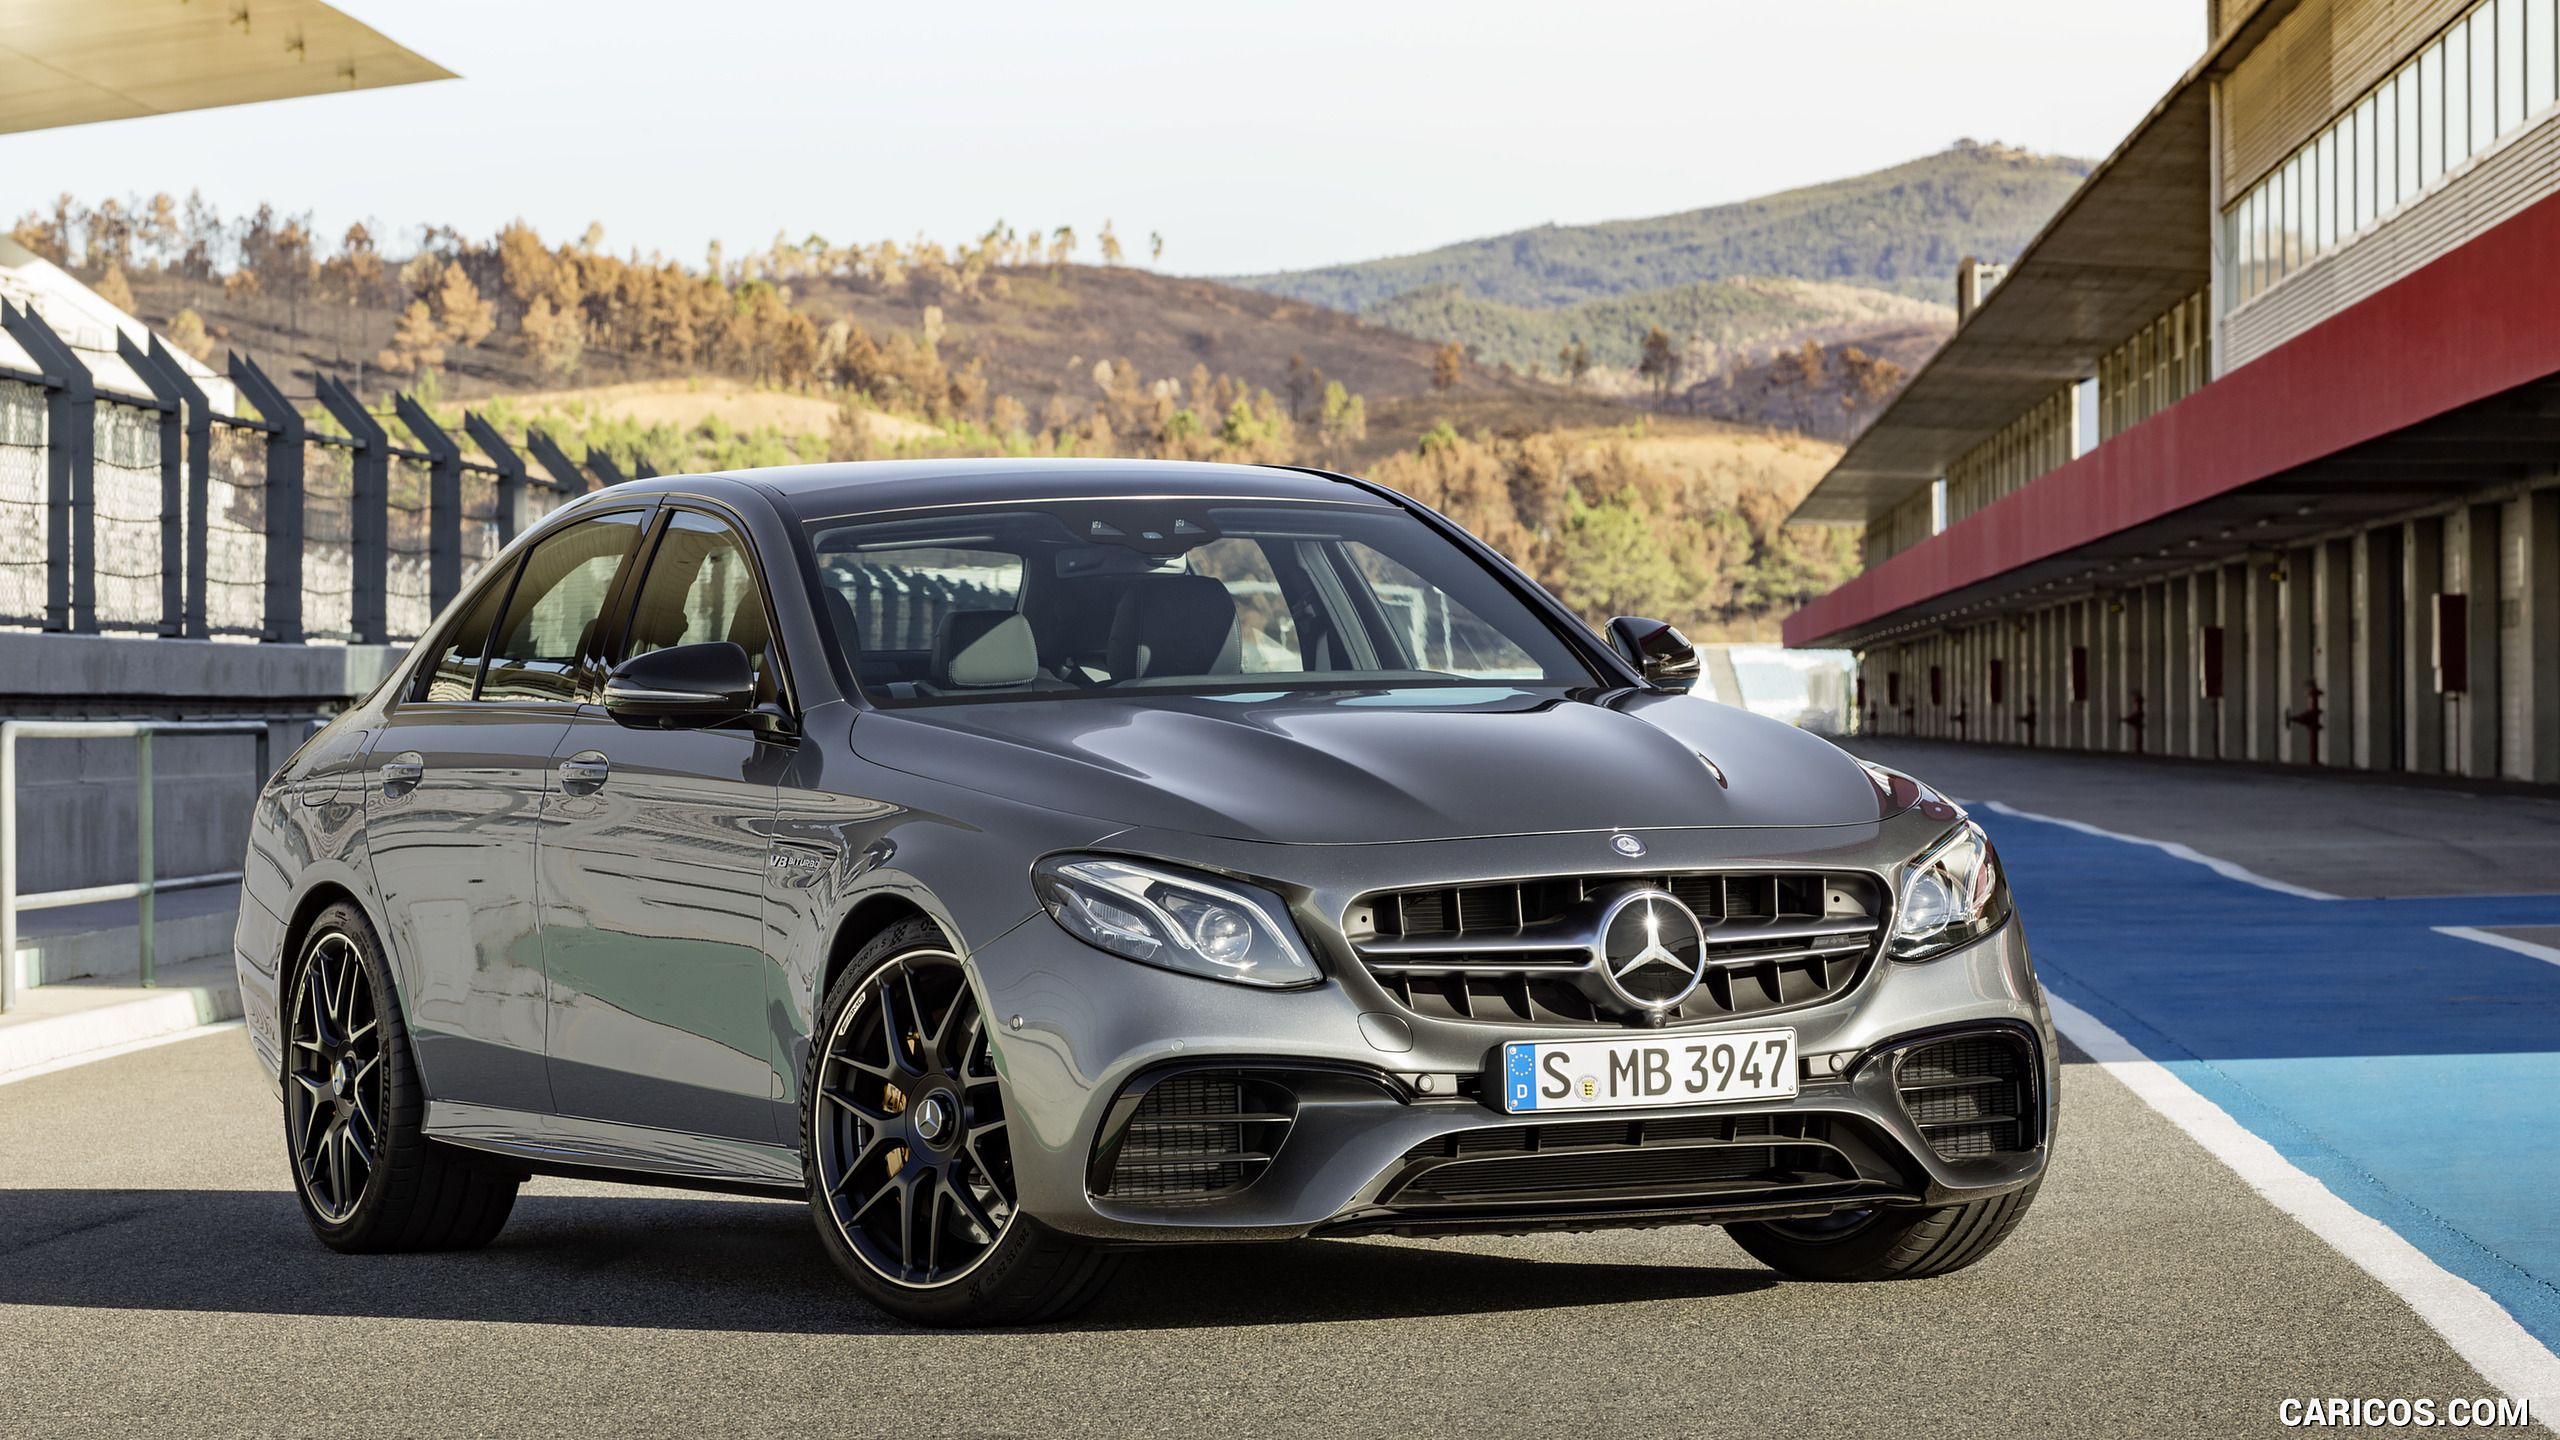 2018 Mercedes AMG E63 S 4MATIC